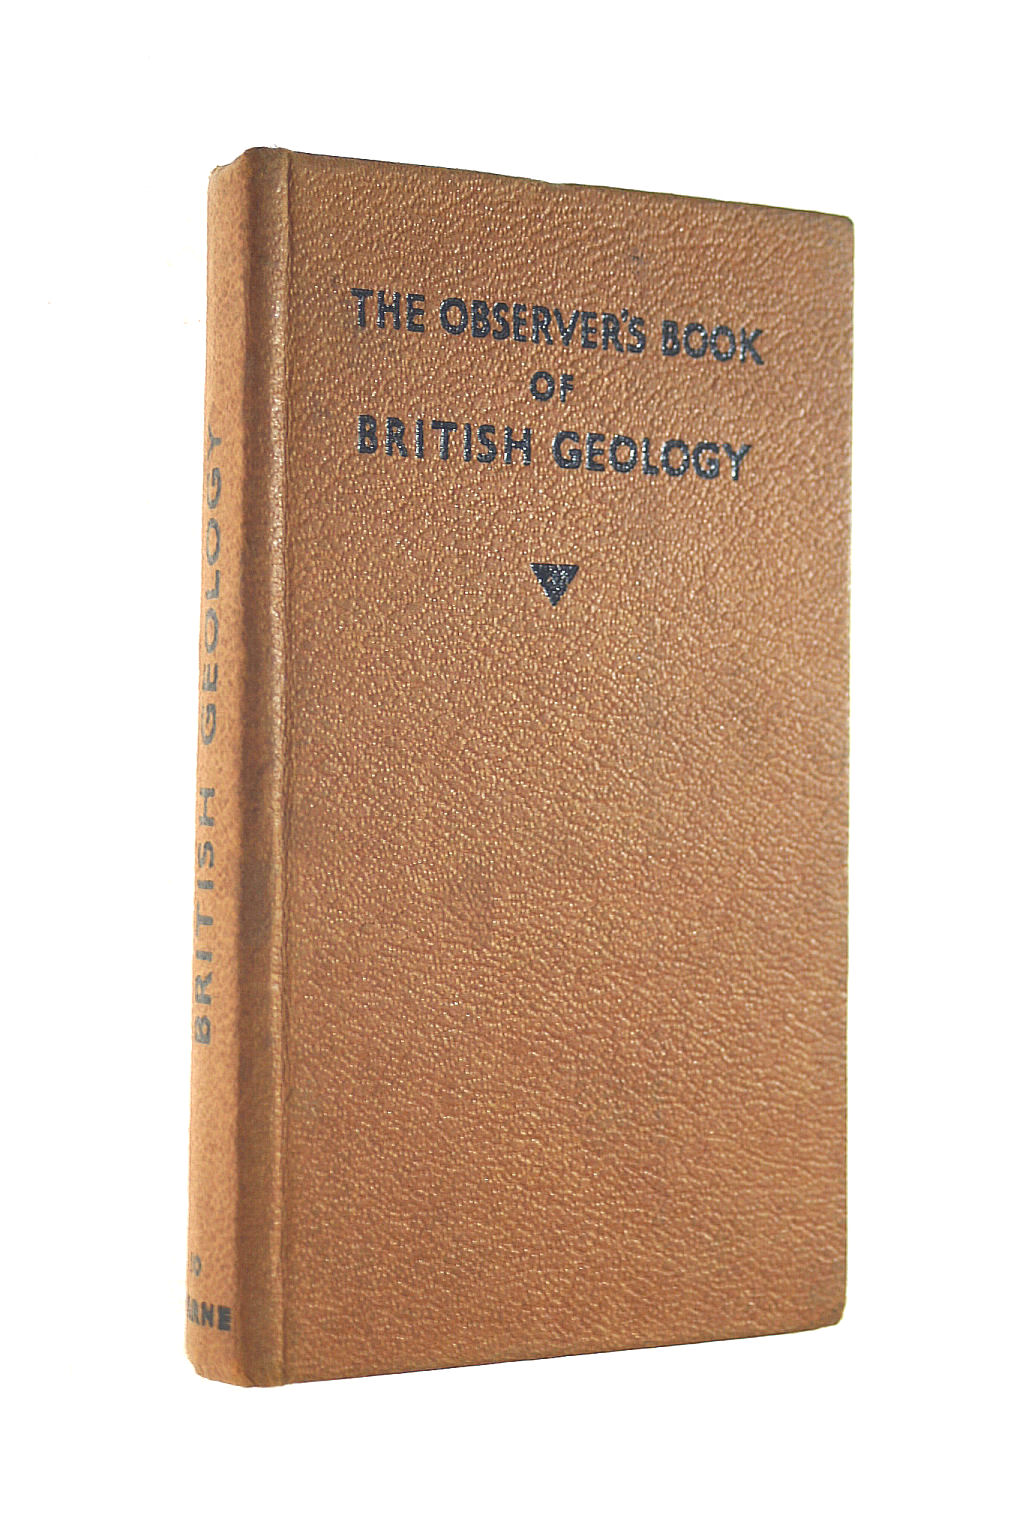 Image for The Observer's Book Of British Geology